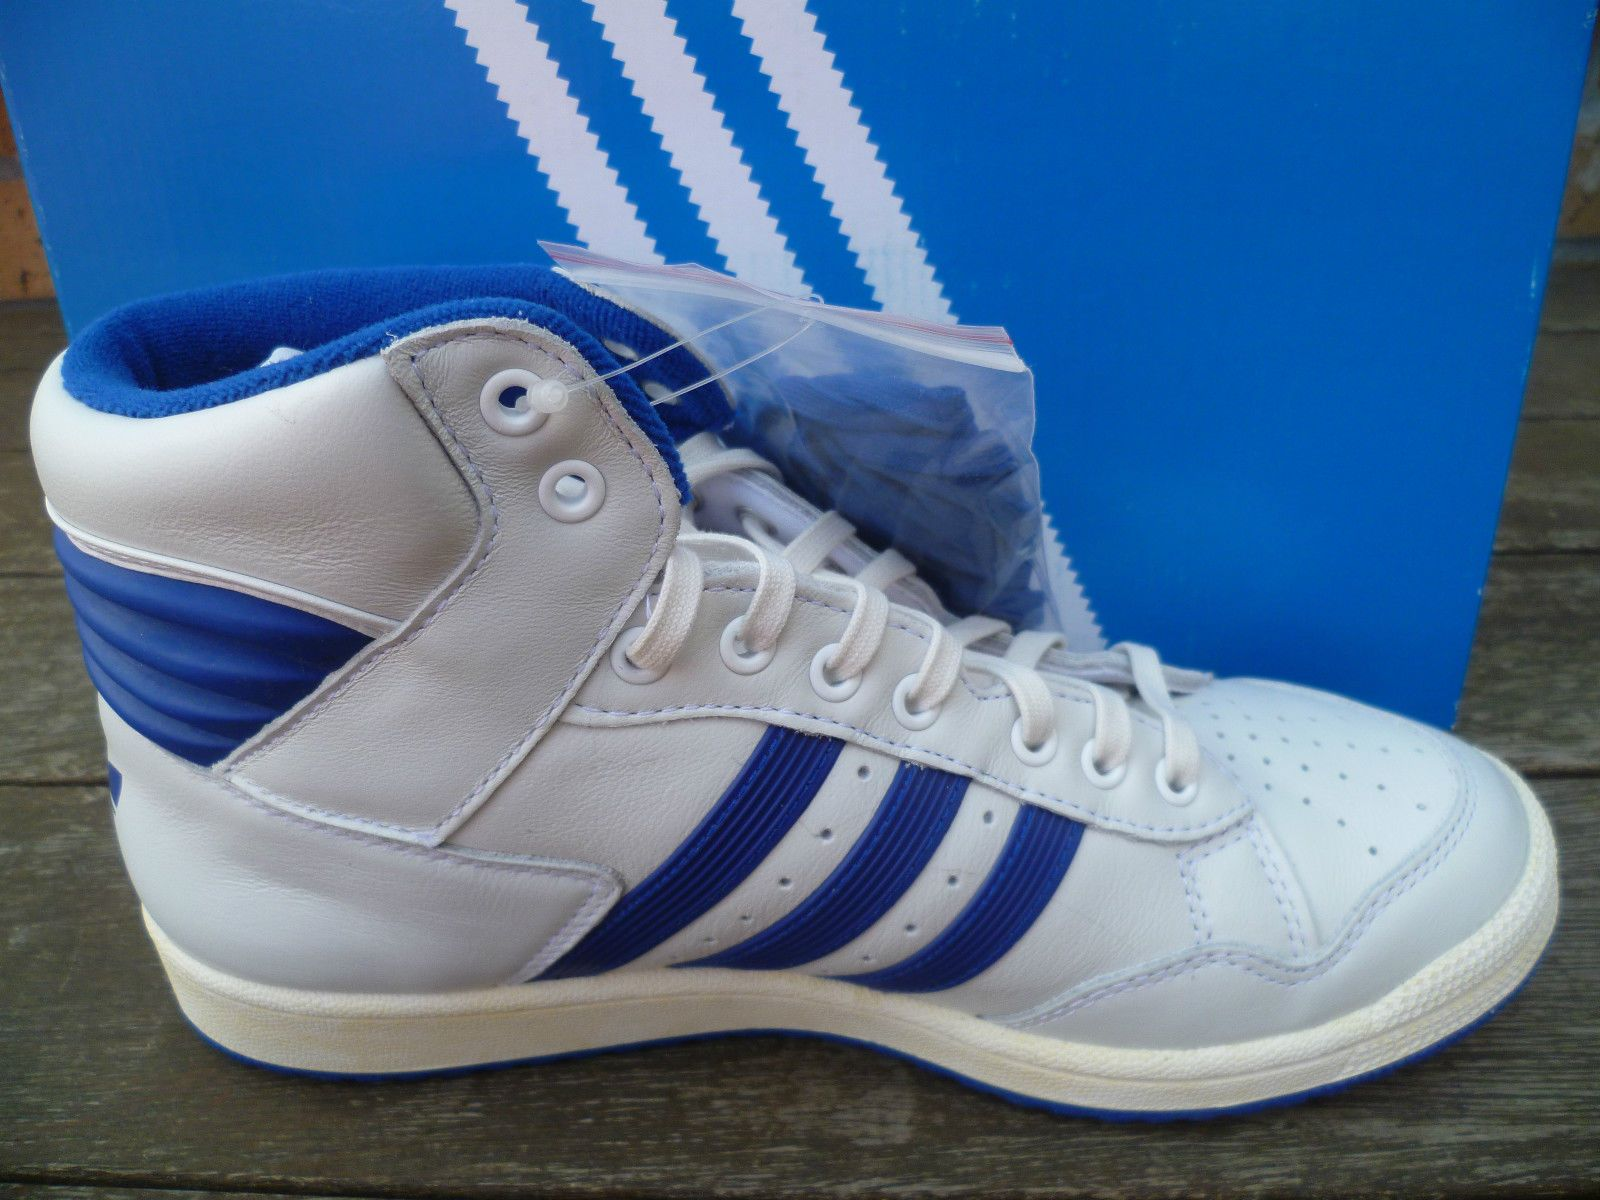 Adidas Pro Conference Hi Vintage Basketball Shoes Trainers Sz7 5 UK G95975  | eBay